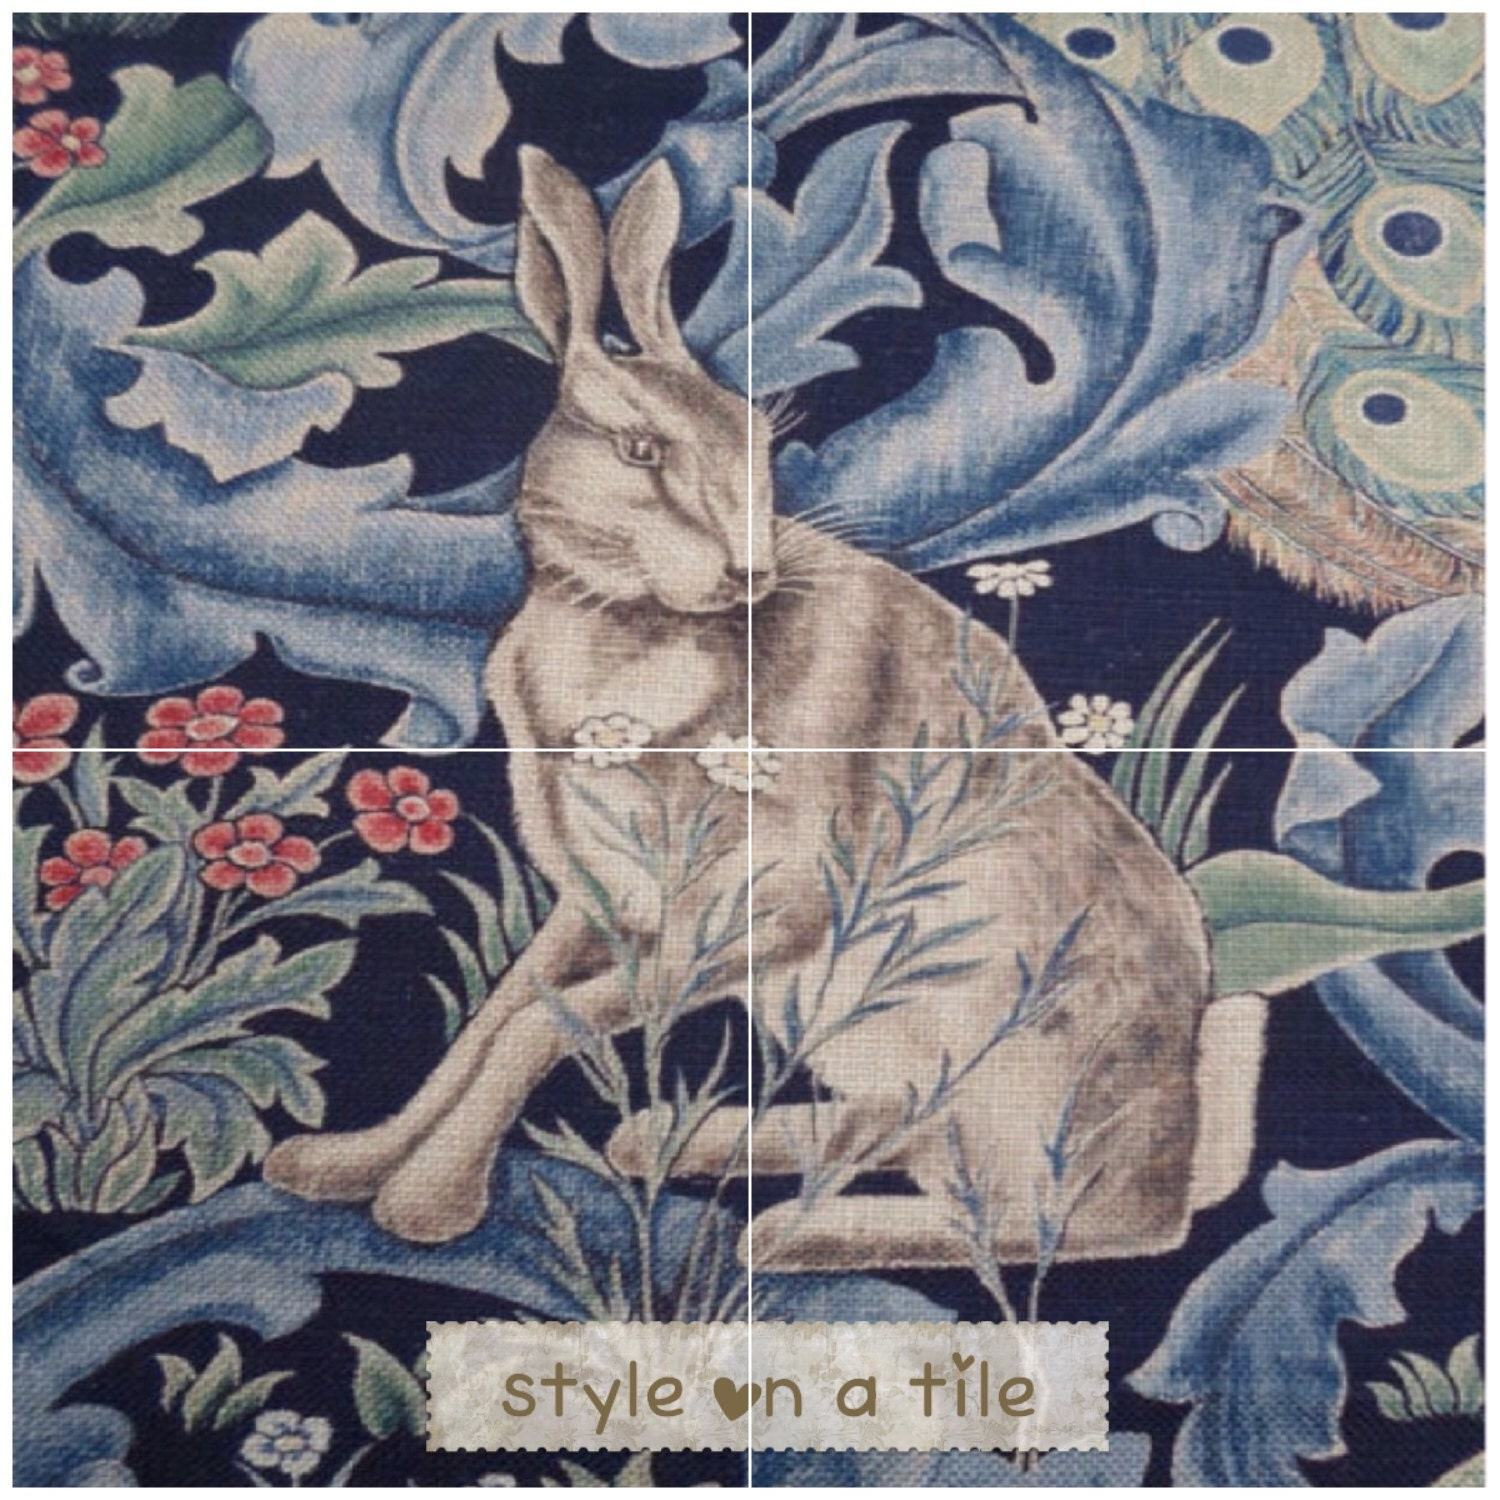 Lovely arts and crafts william morris forest rabbit hare bunny lovely arts and crafts william morris forest rabbit hare bunny indigo design 4 x 6 or 152mm ceramic tile mural mosaic wall art splash back doublecrazyfo Images